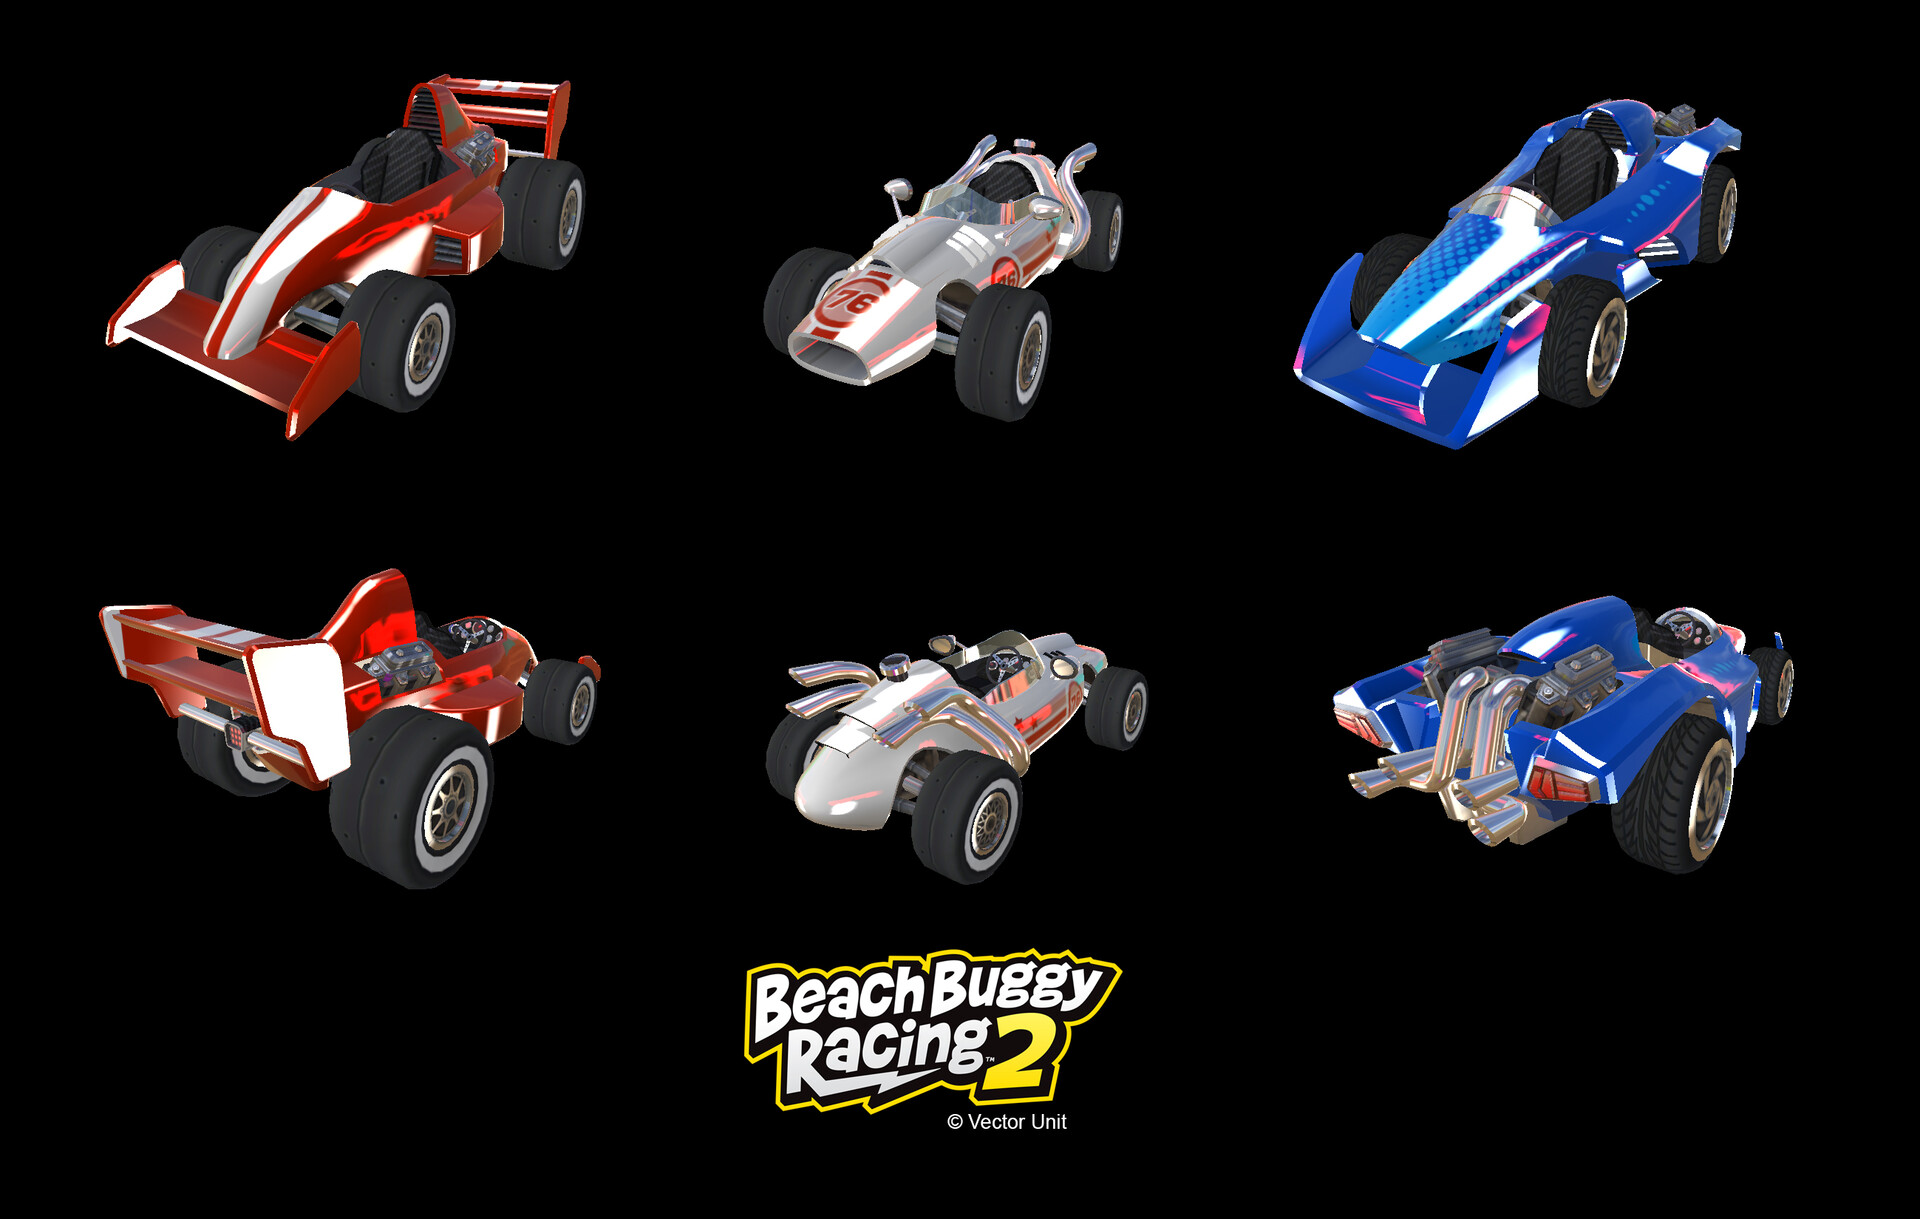 Beach Buggy Racing 2 Vehicles: Formula One Configurations